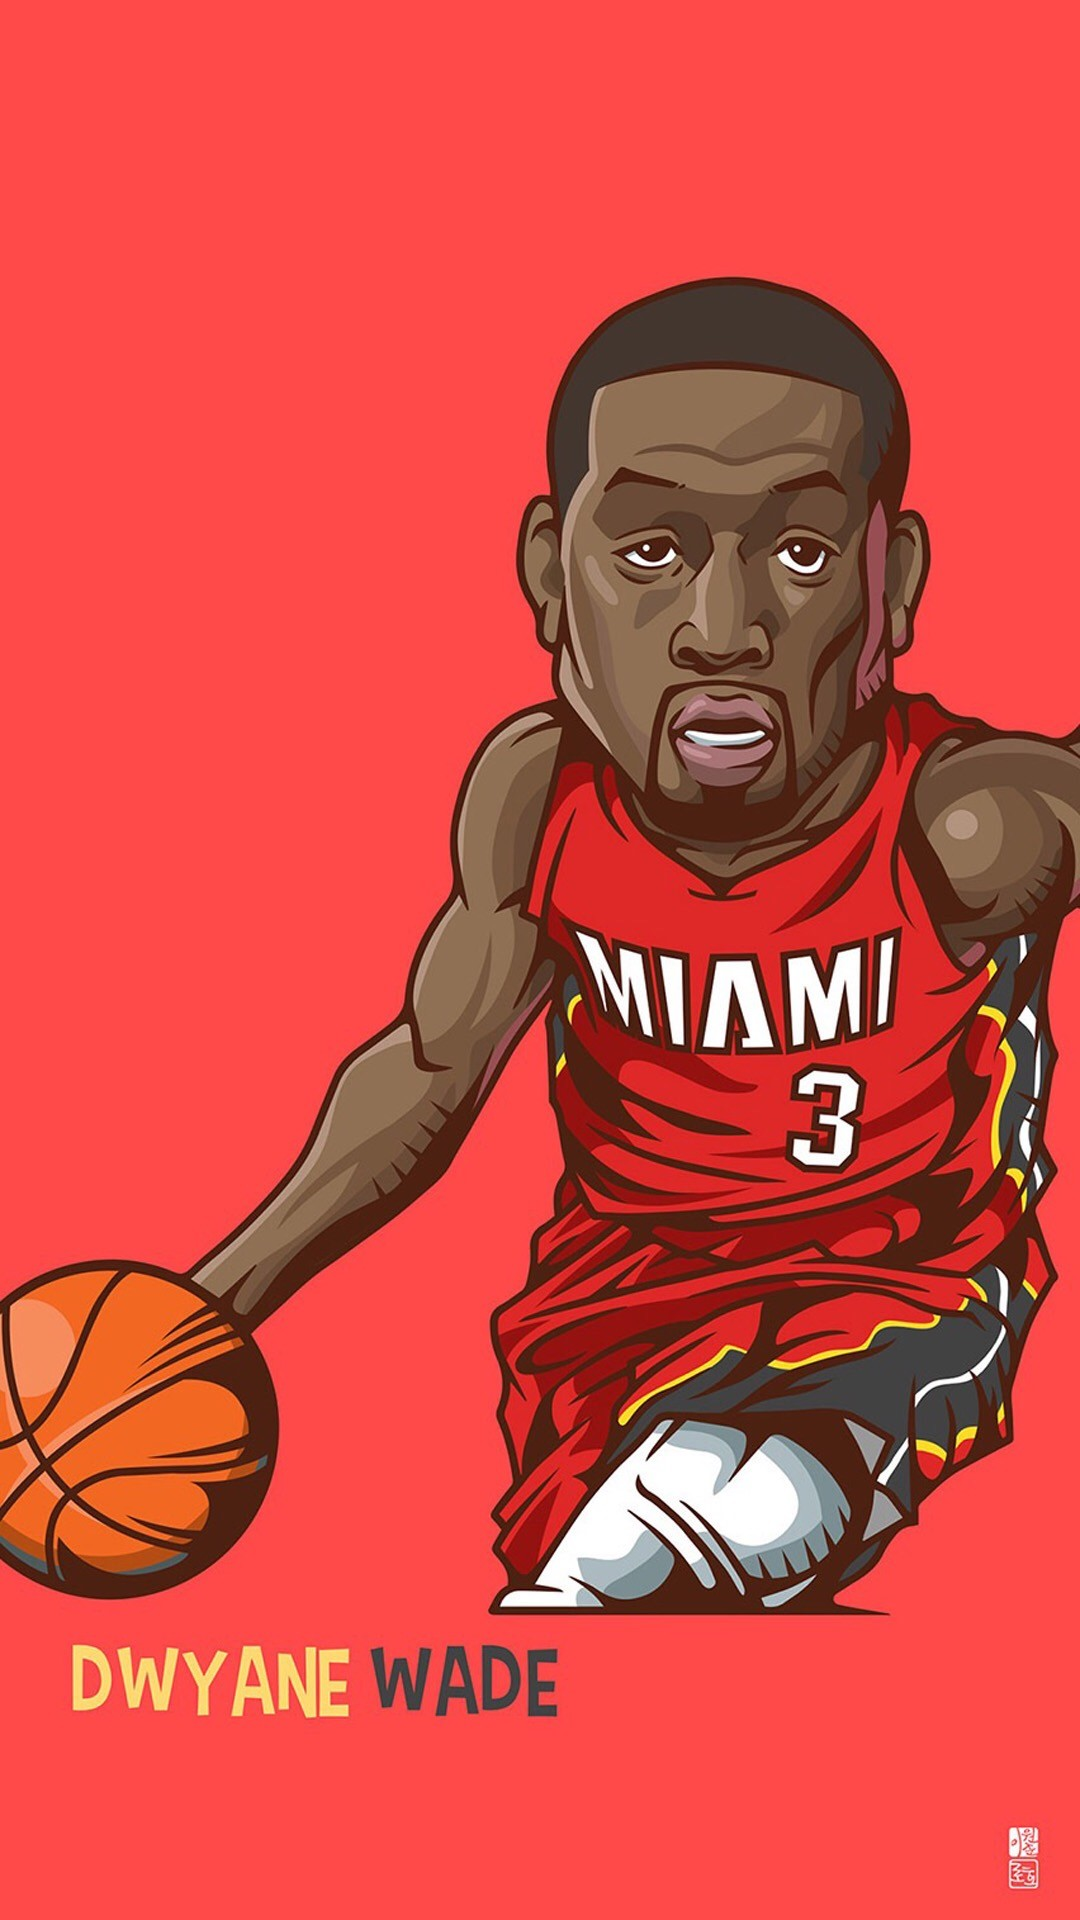 1080x1920 Best 25+ Dwyane wade wallpaper ideas only on Pinterest | Dwyane wade, Miami  heat and Mami heat